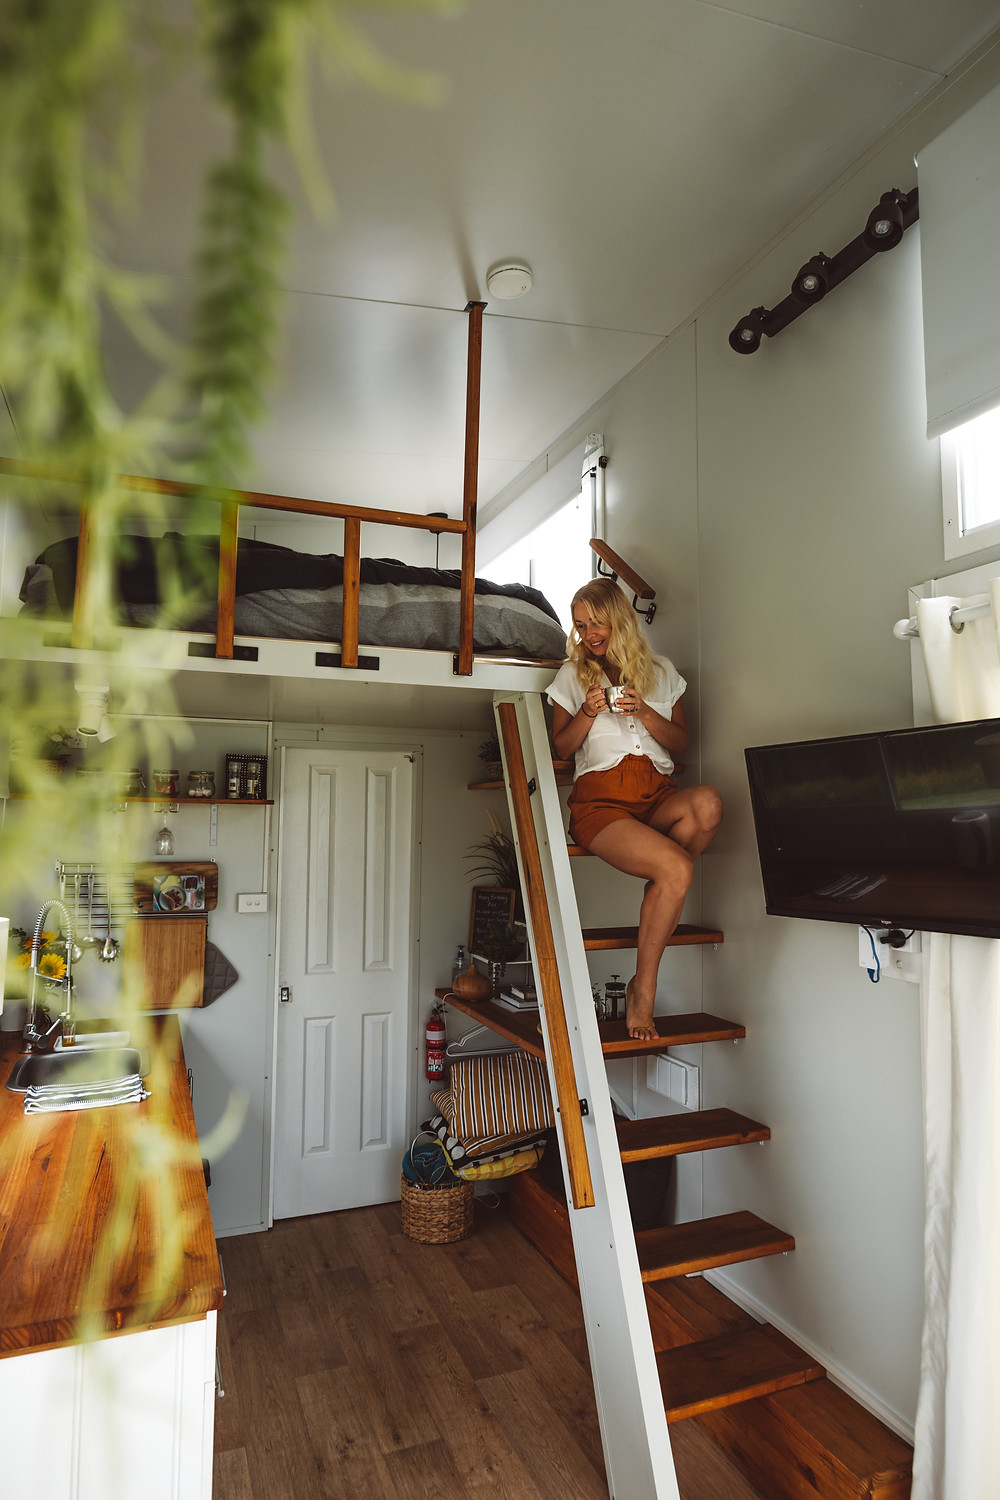 Interior of a tiny home showing inside of kitchen and bedroom in Australia